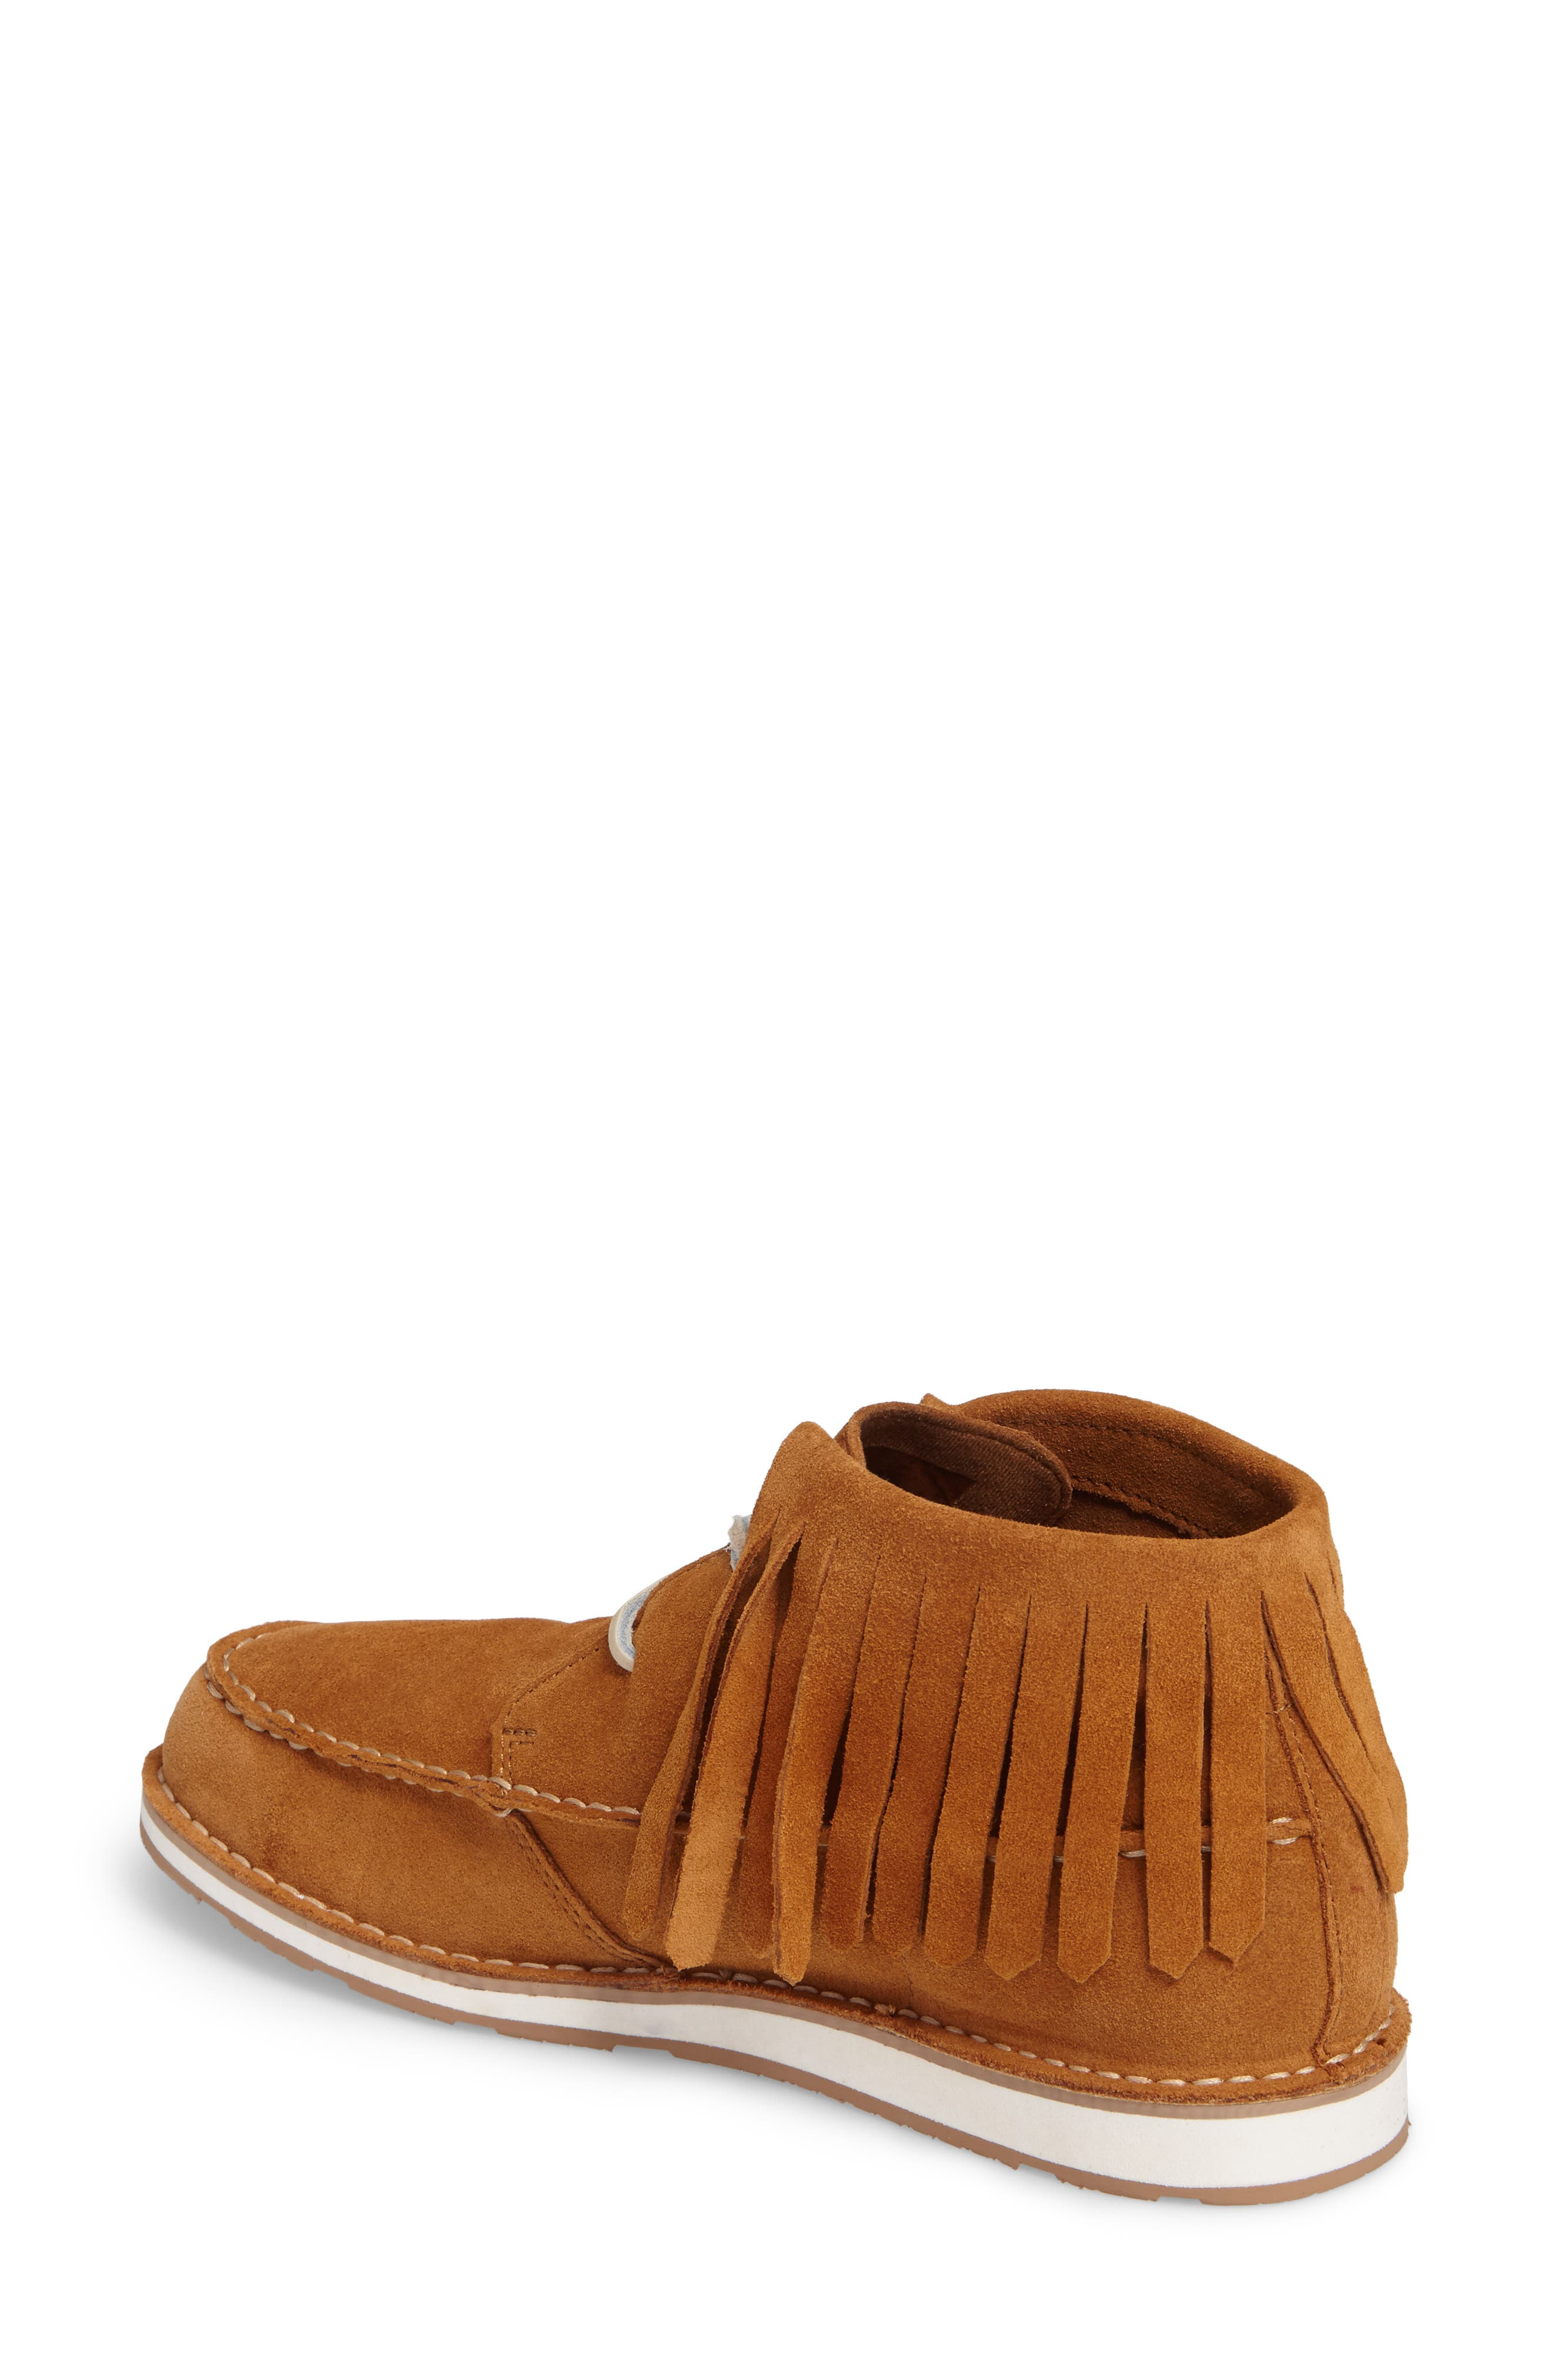 Alternate Image 2  - Ariat Cruiser Fringe Chukka Boot (Women)